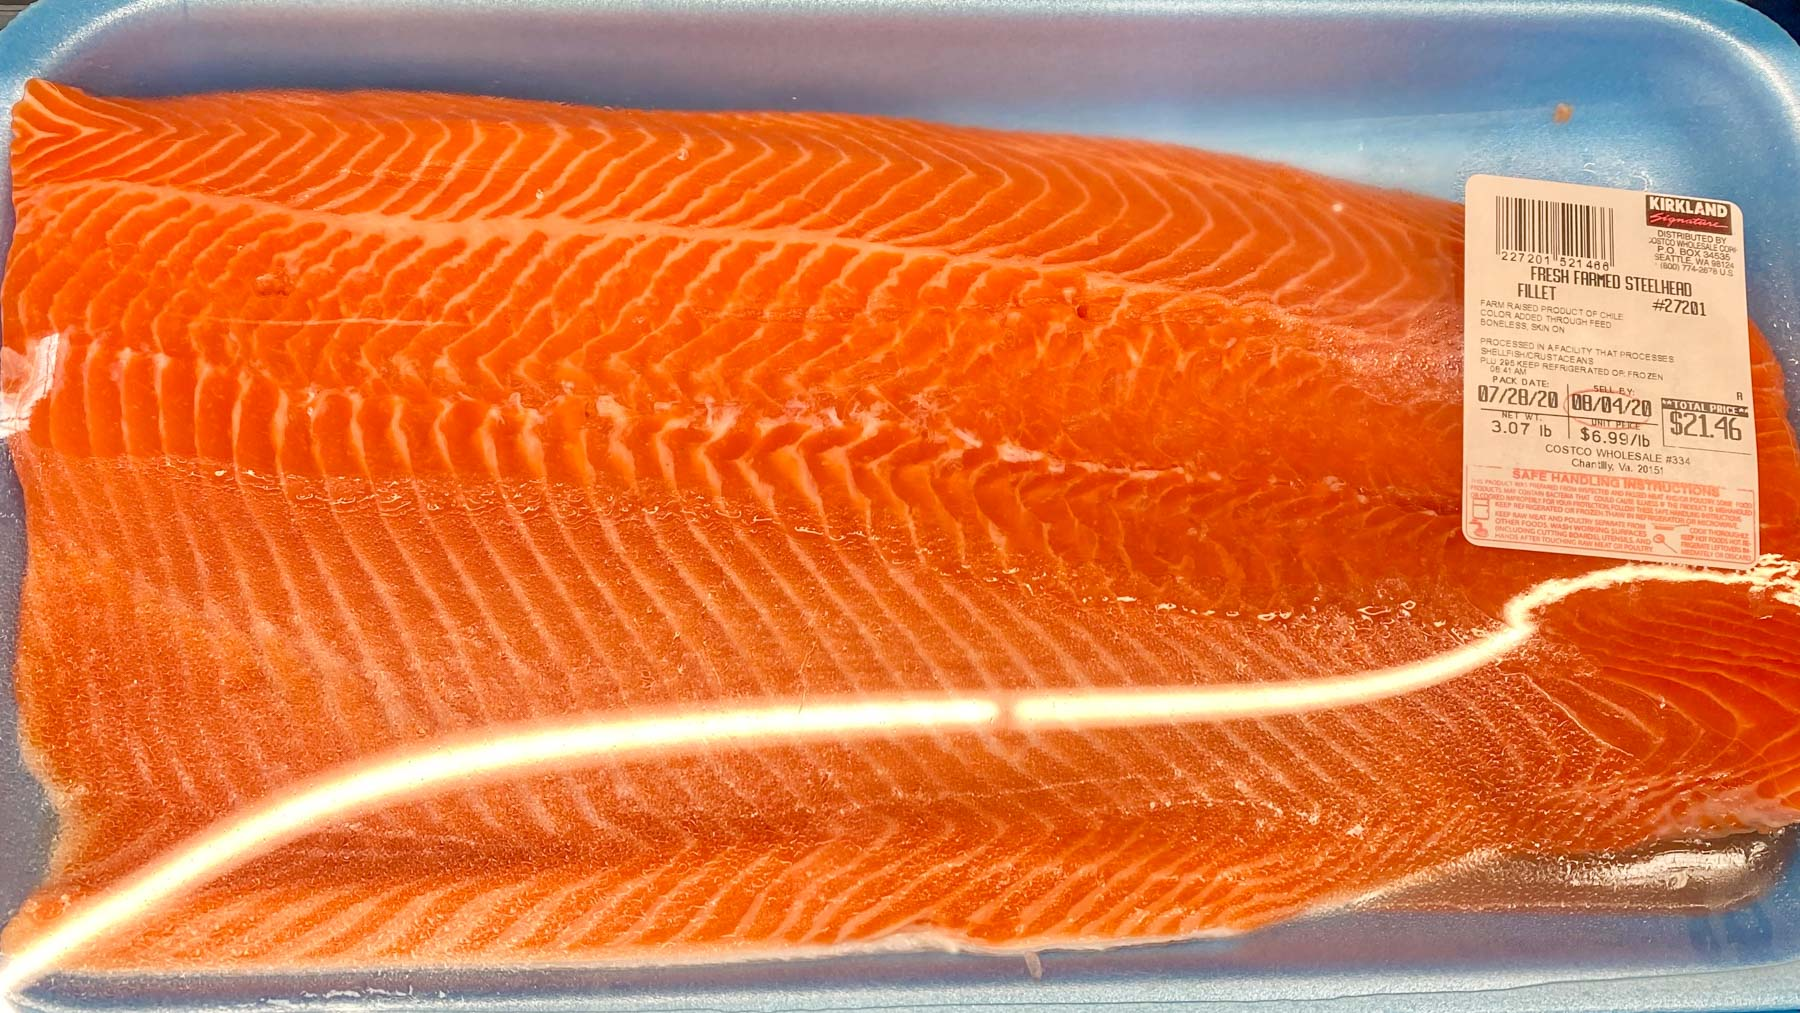 costco salmon from Chile raised with antibiotics